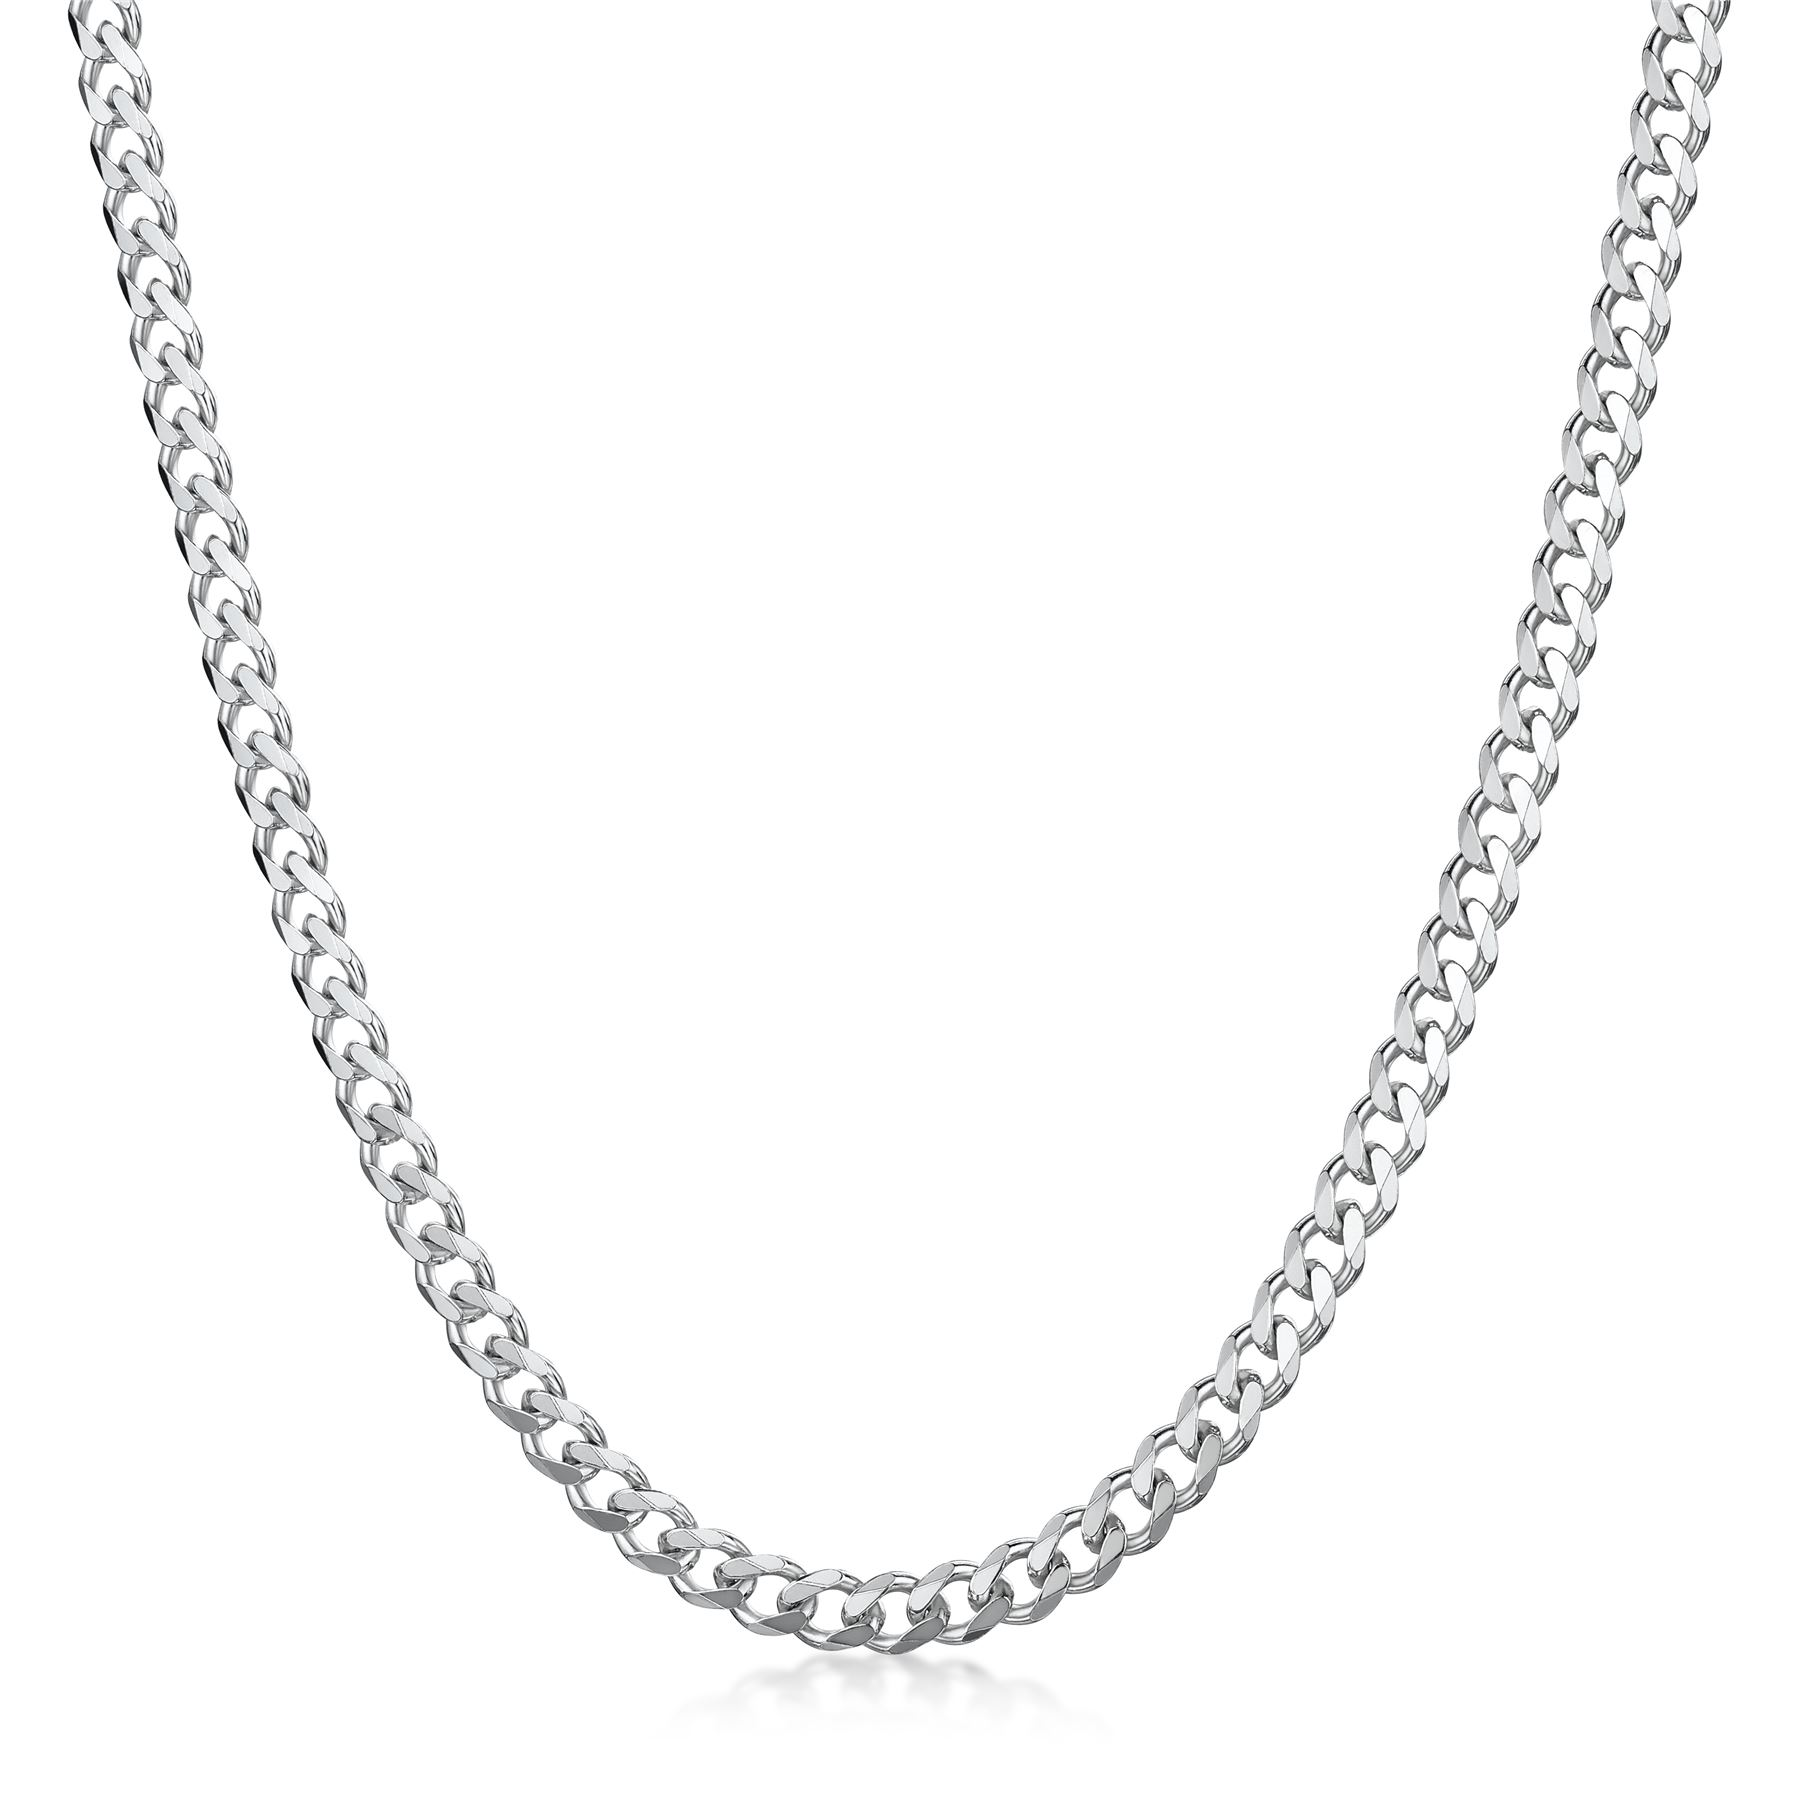 Amberta-925-Sterling-Silver-Link-Chain-Mens-Curb-Cuban-Necklace-ALL-SIZES-Italy thumbnail 21